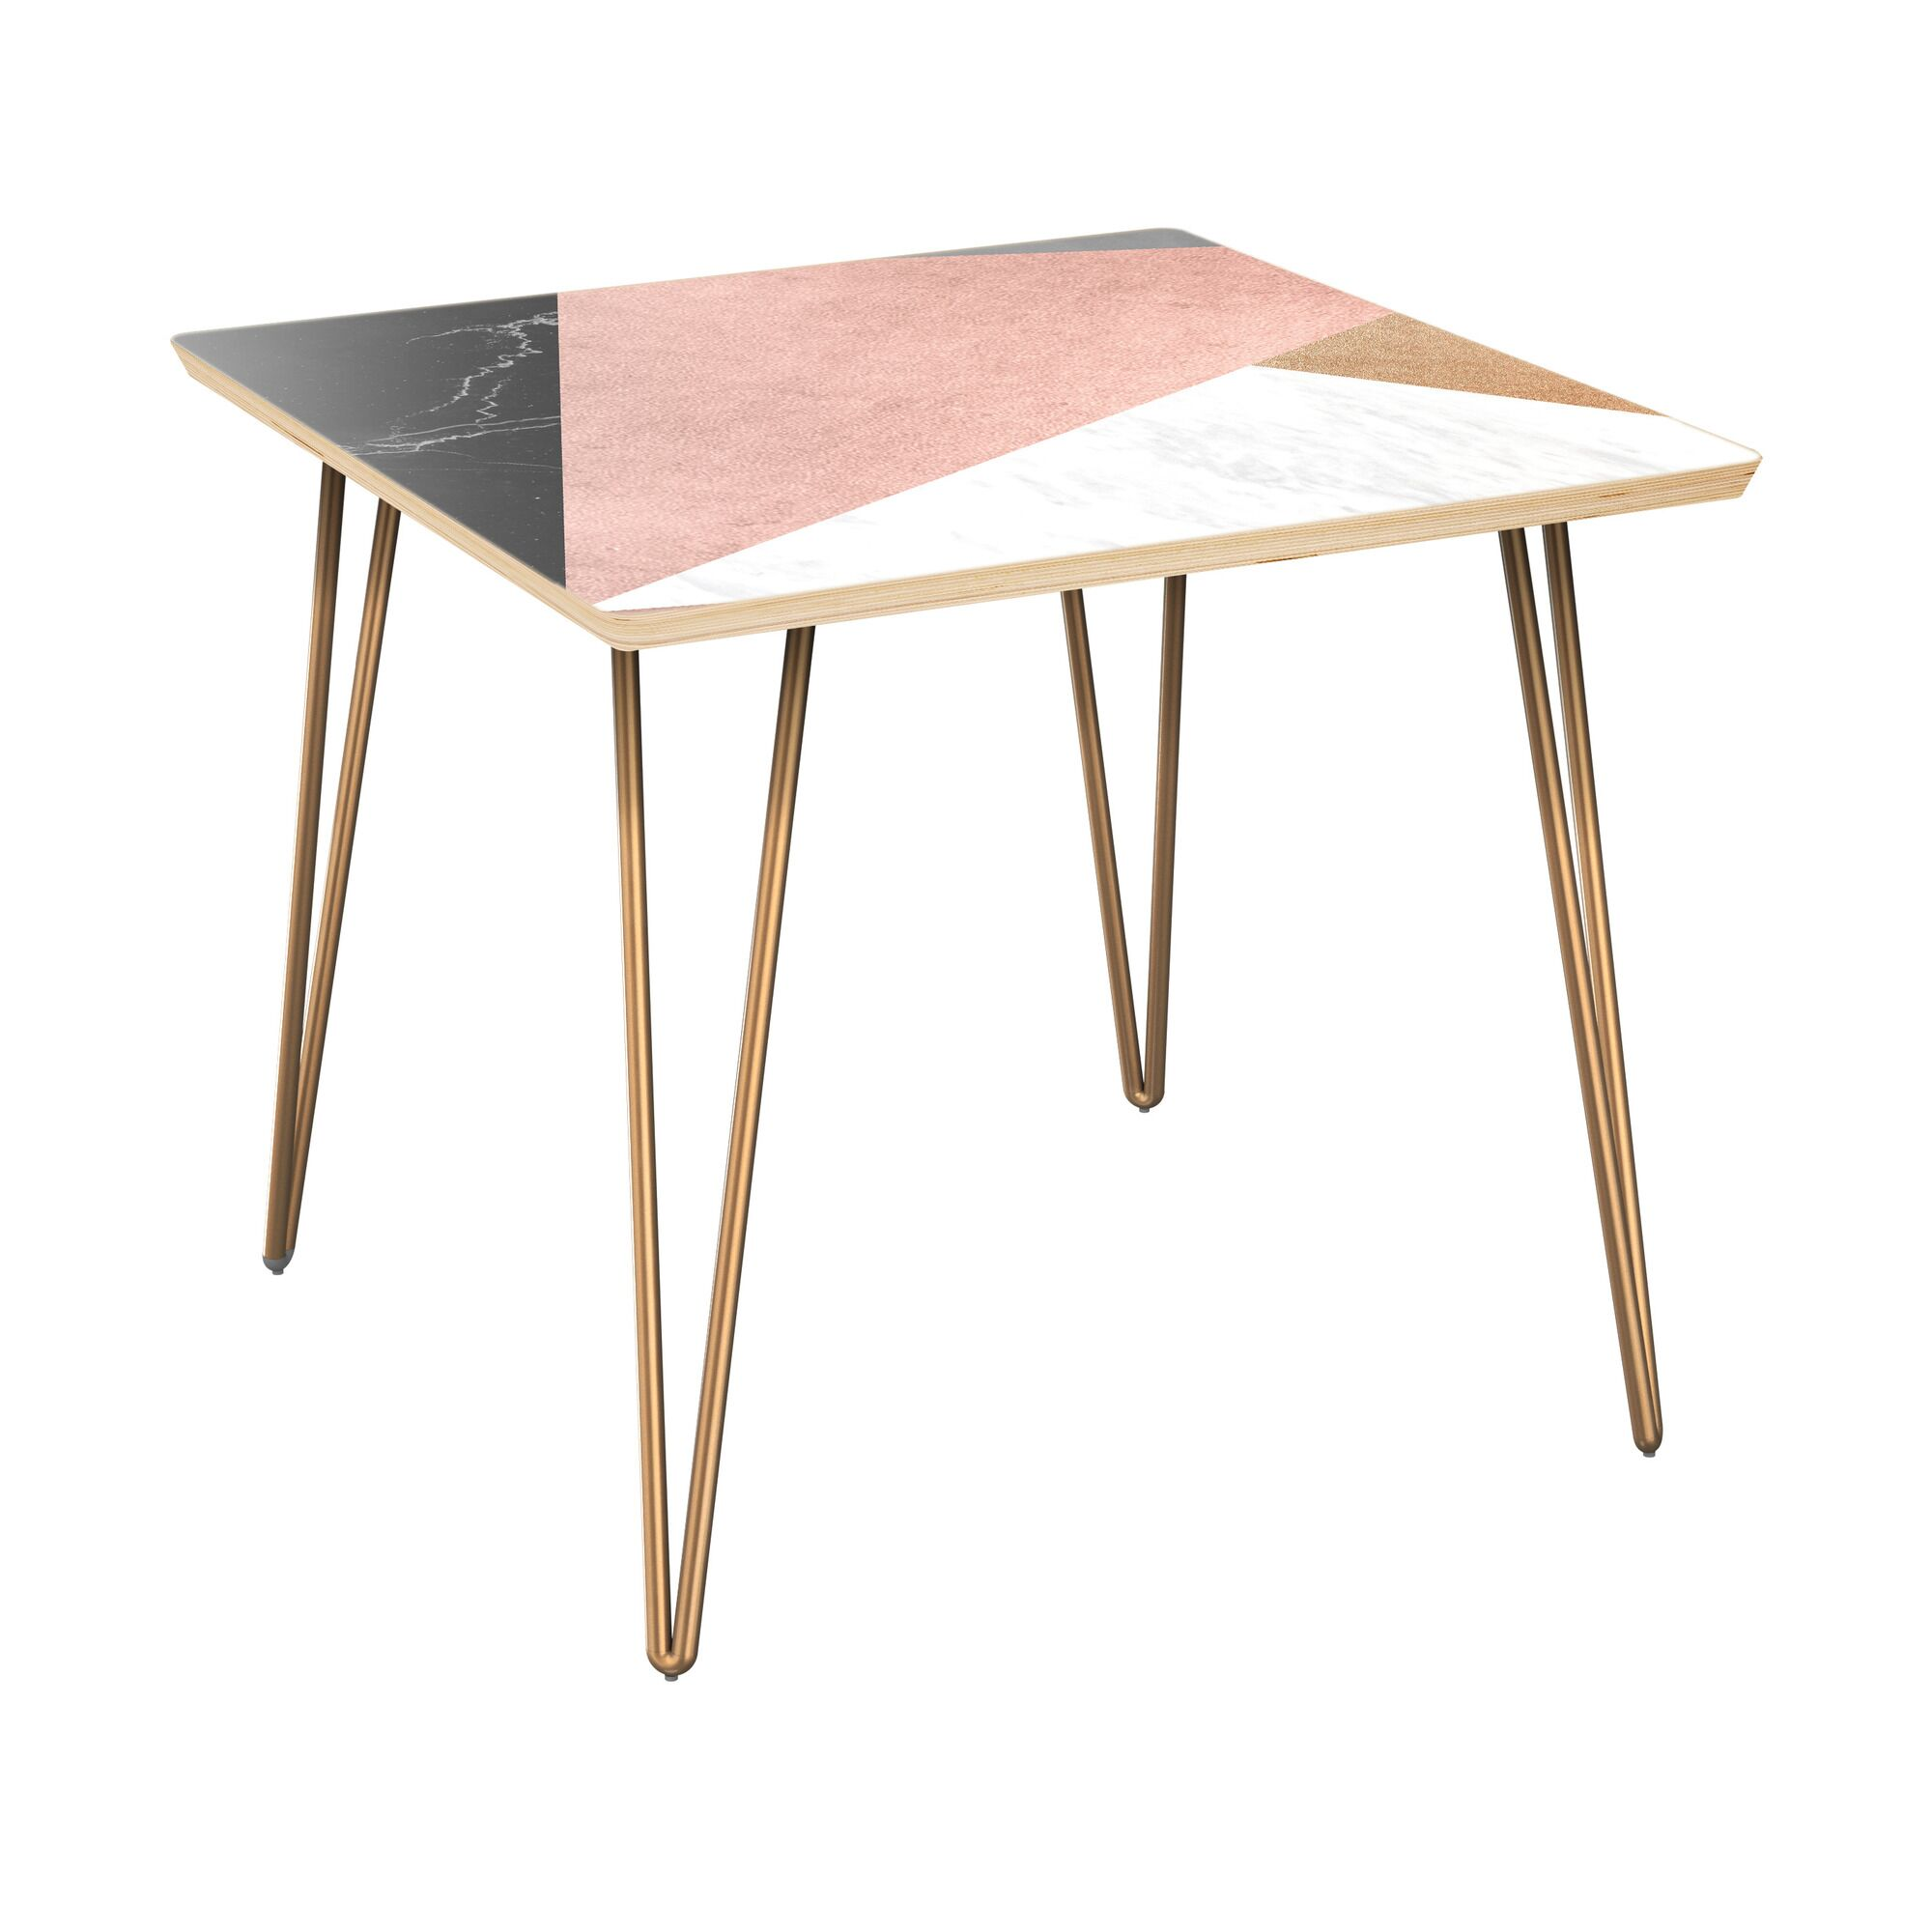 Rosso End Table Table Top Color: Natural, Table Base Color: Brass